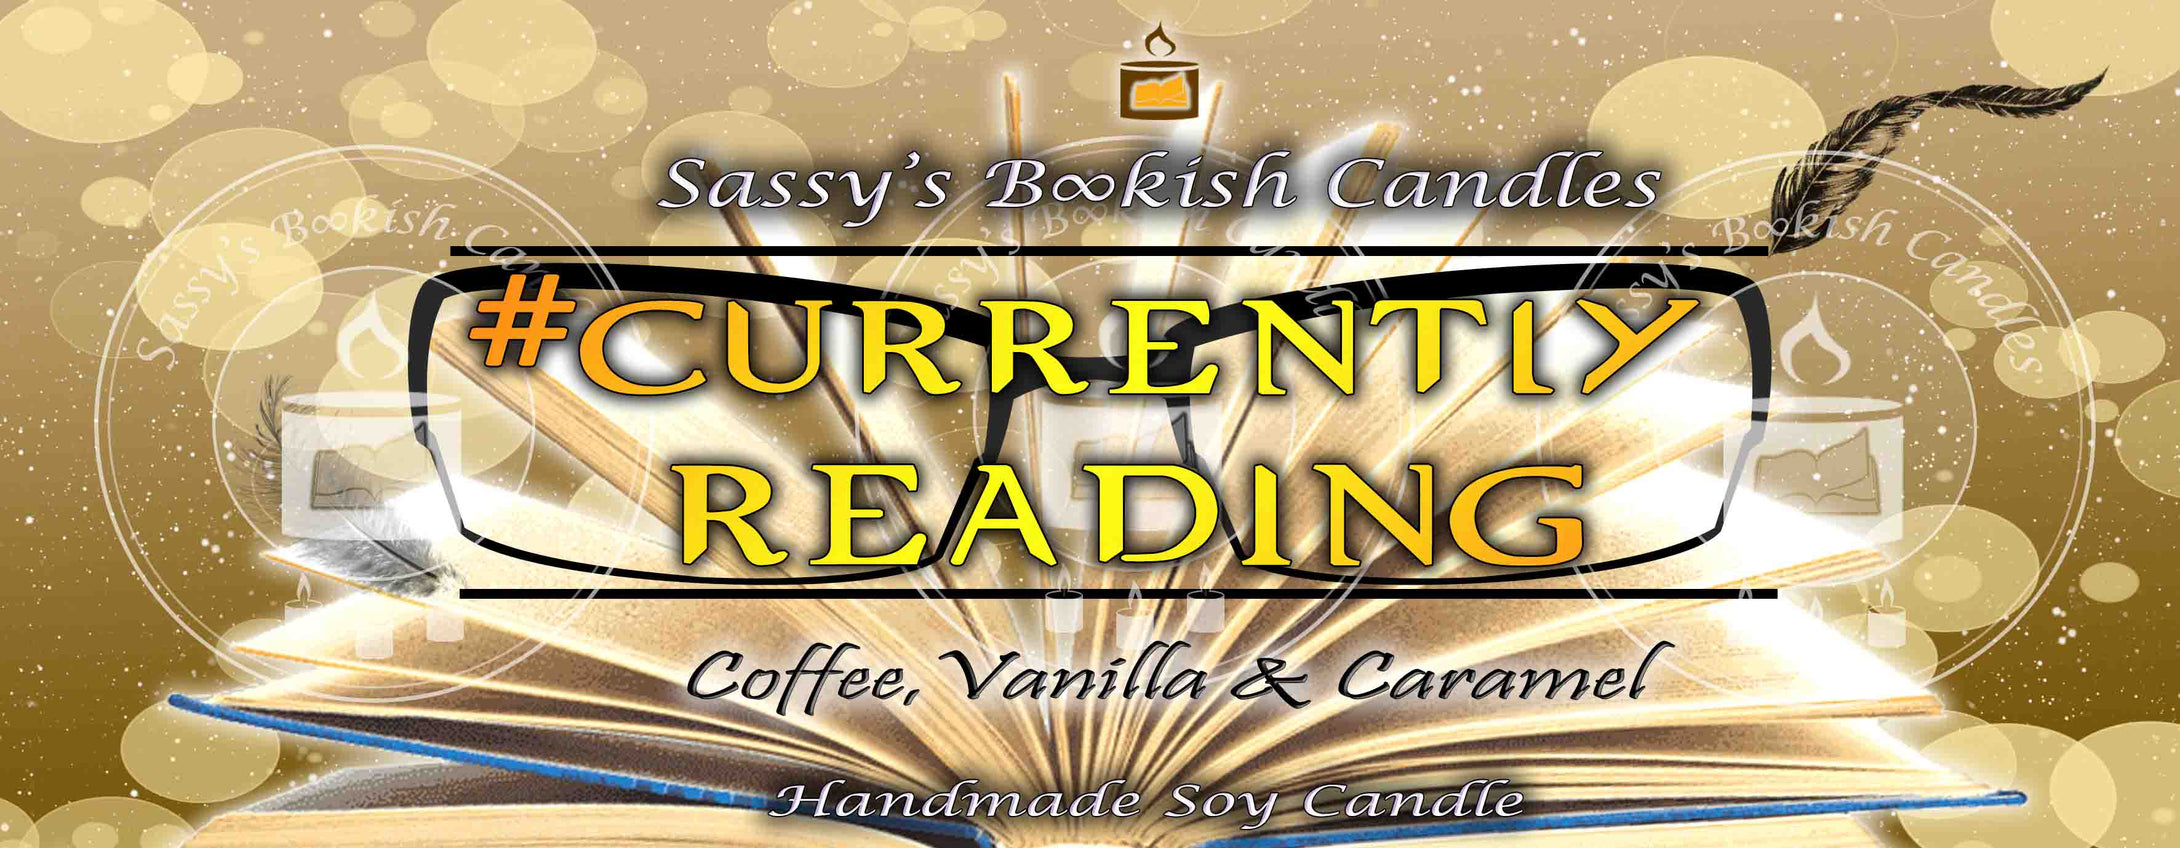 currently reading - Coffee, Vanilla & Caramel - Bookish Candle